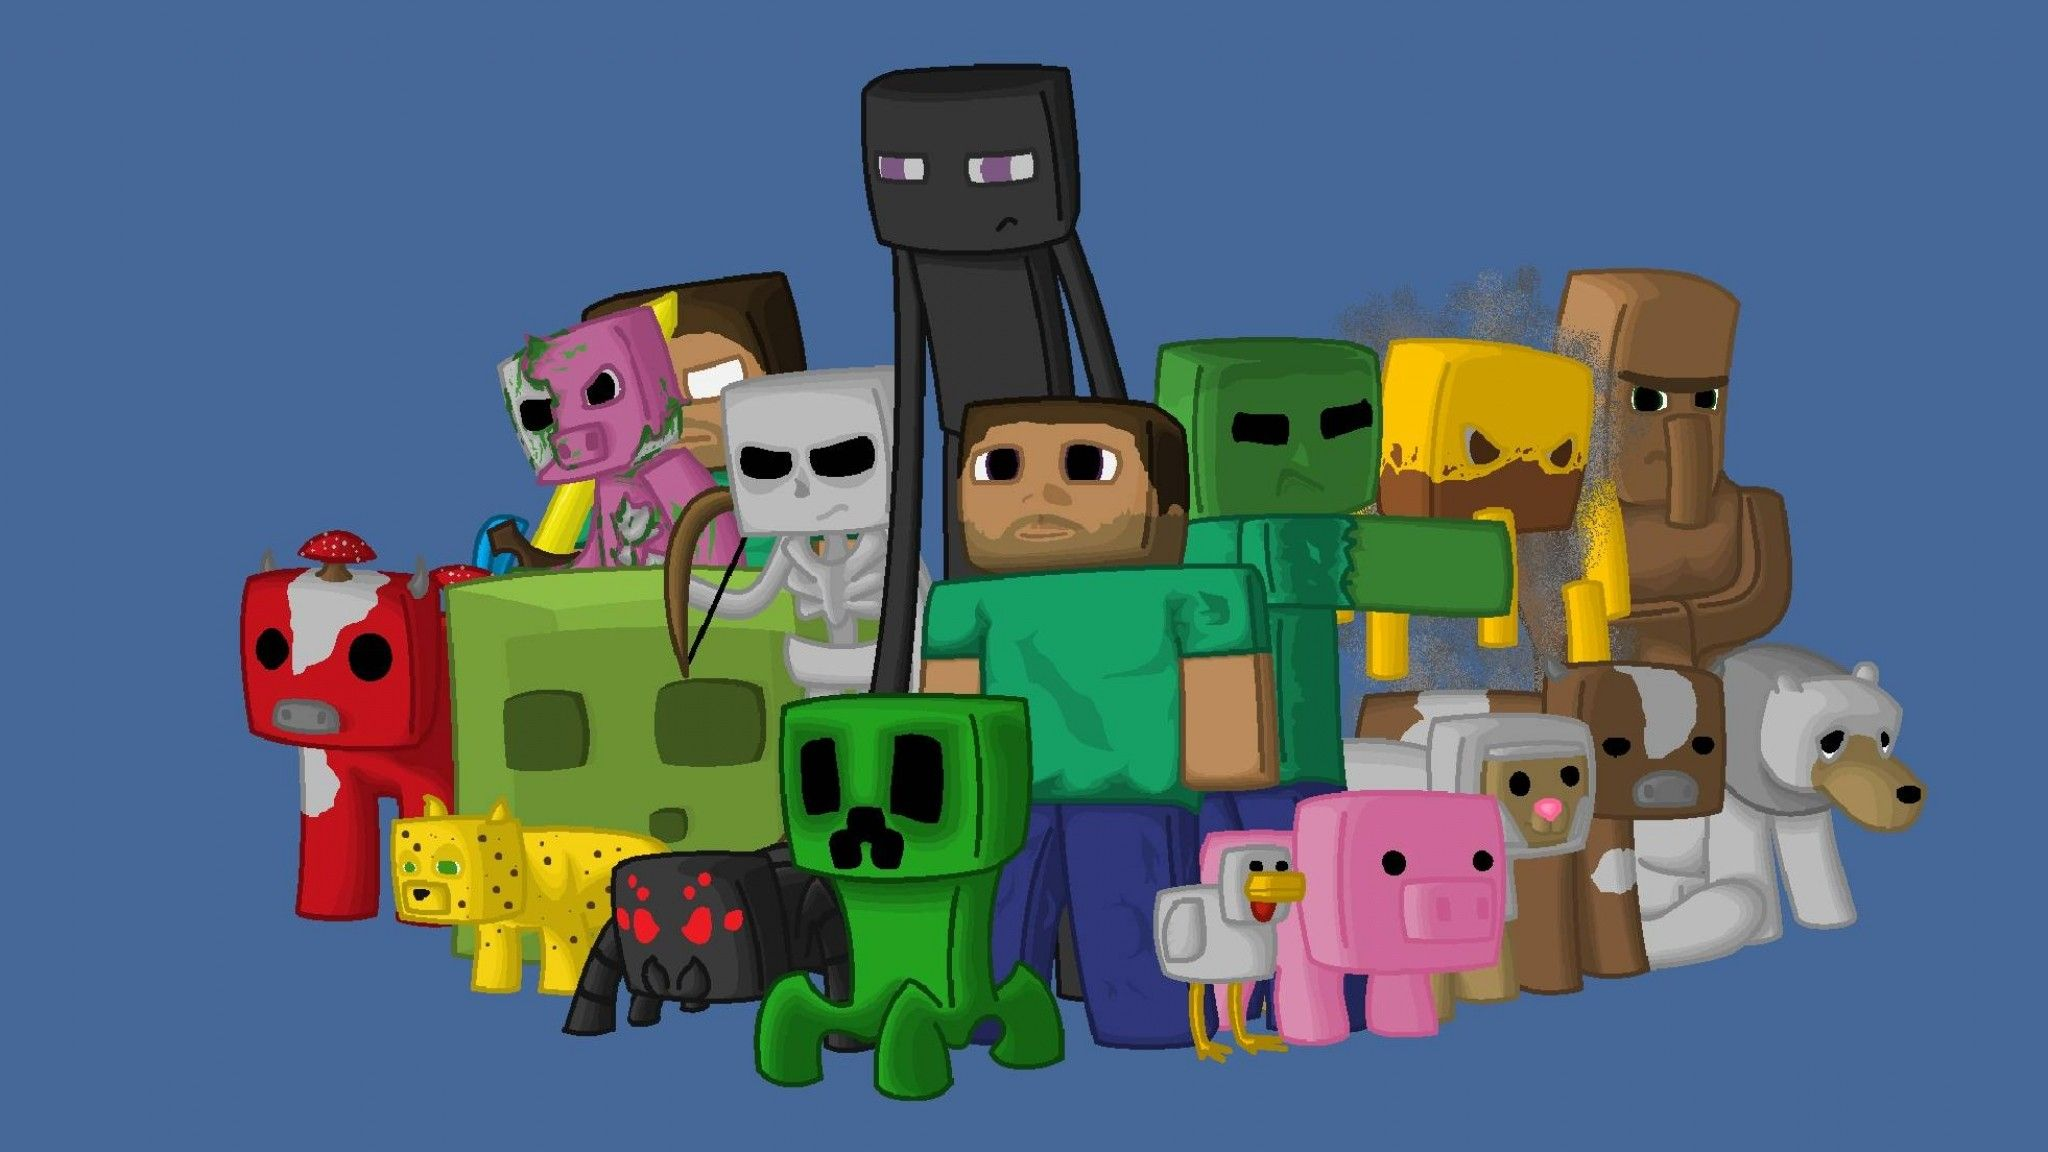 2048x1152 Preview Wallpaper Minecraft Characters Game